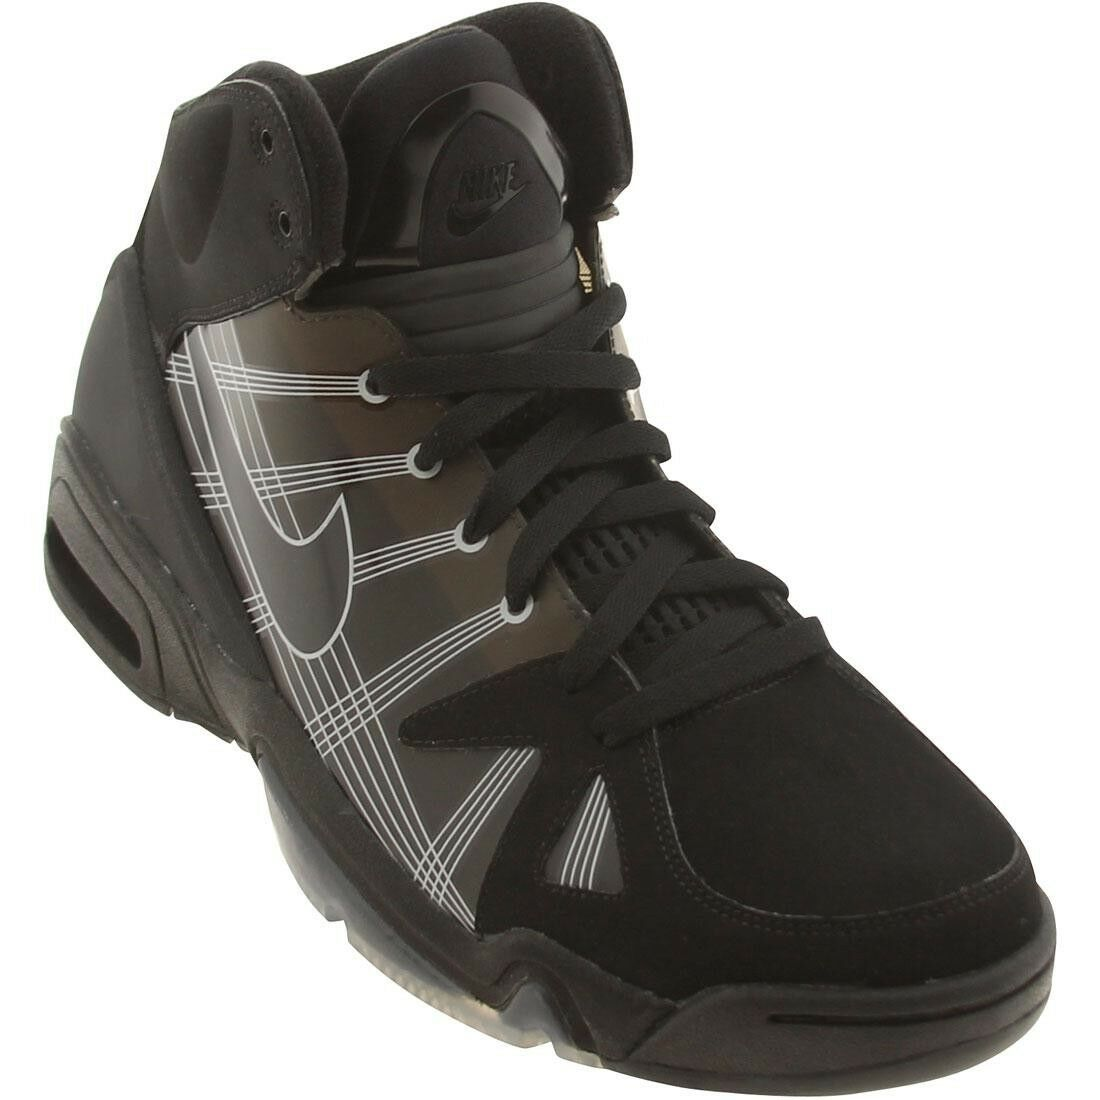 386159-001 Nike Air Hoop Structure LE Black Medium Grey